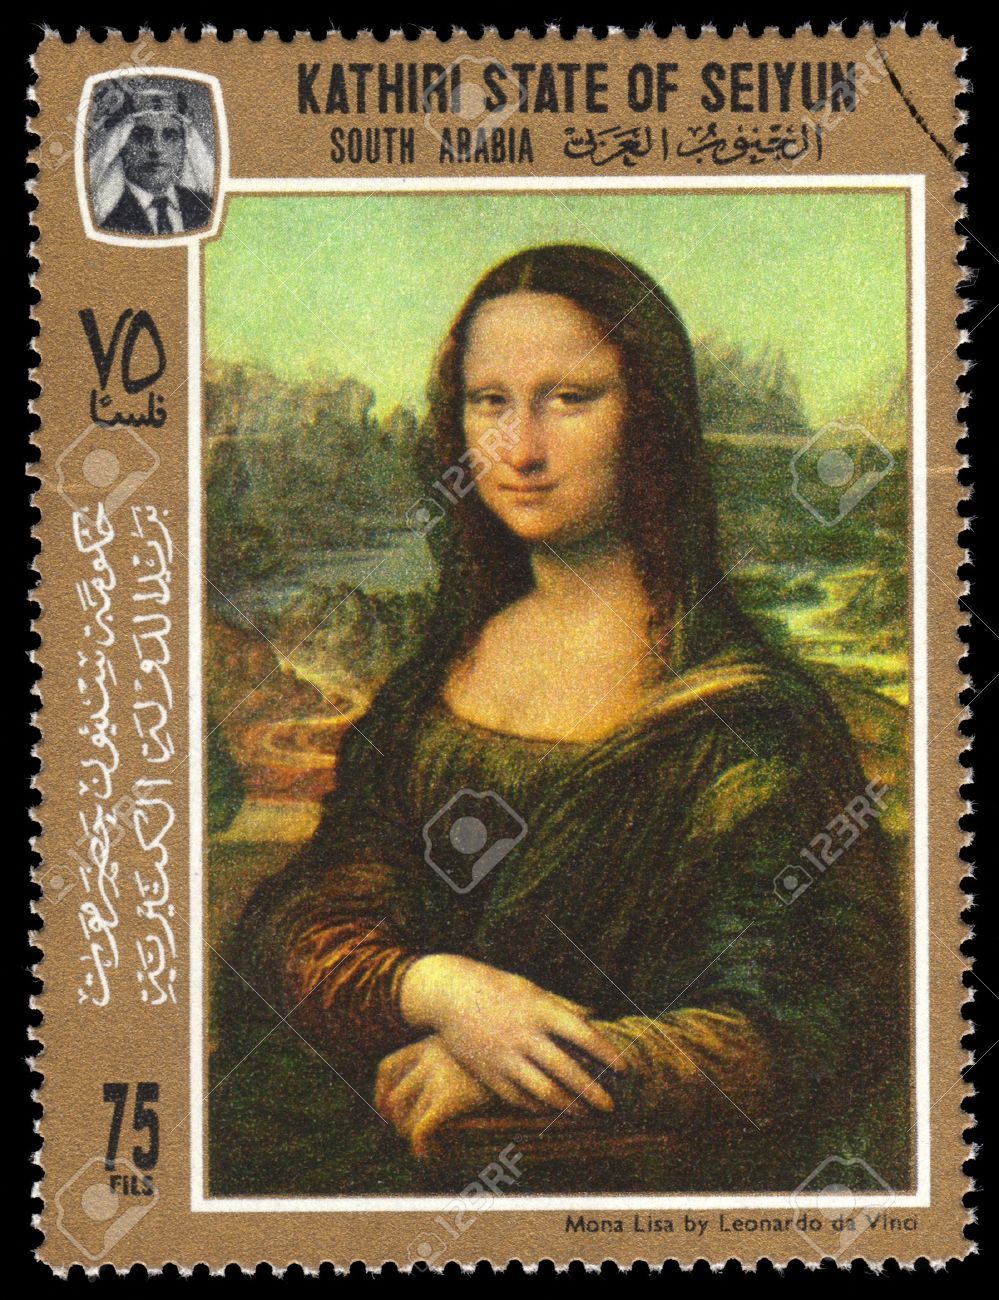 kathiri state of seiyun postage stamp with a portrait image of